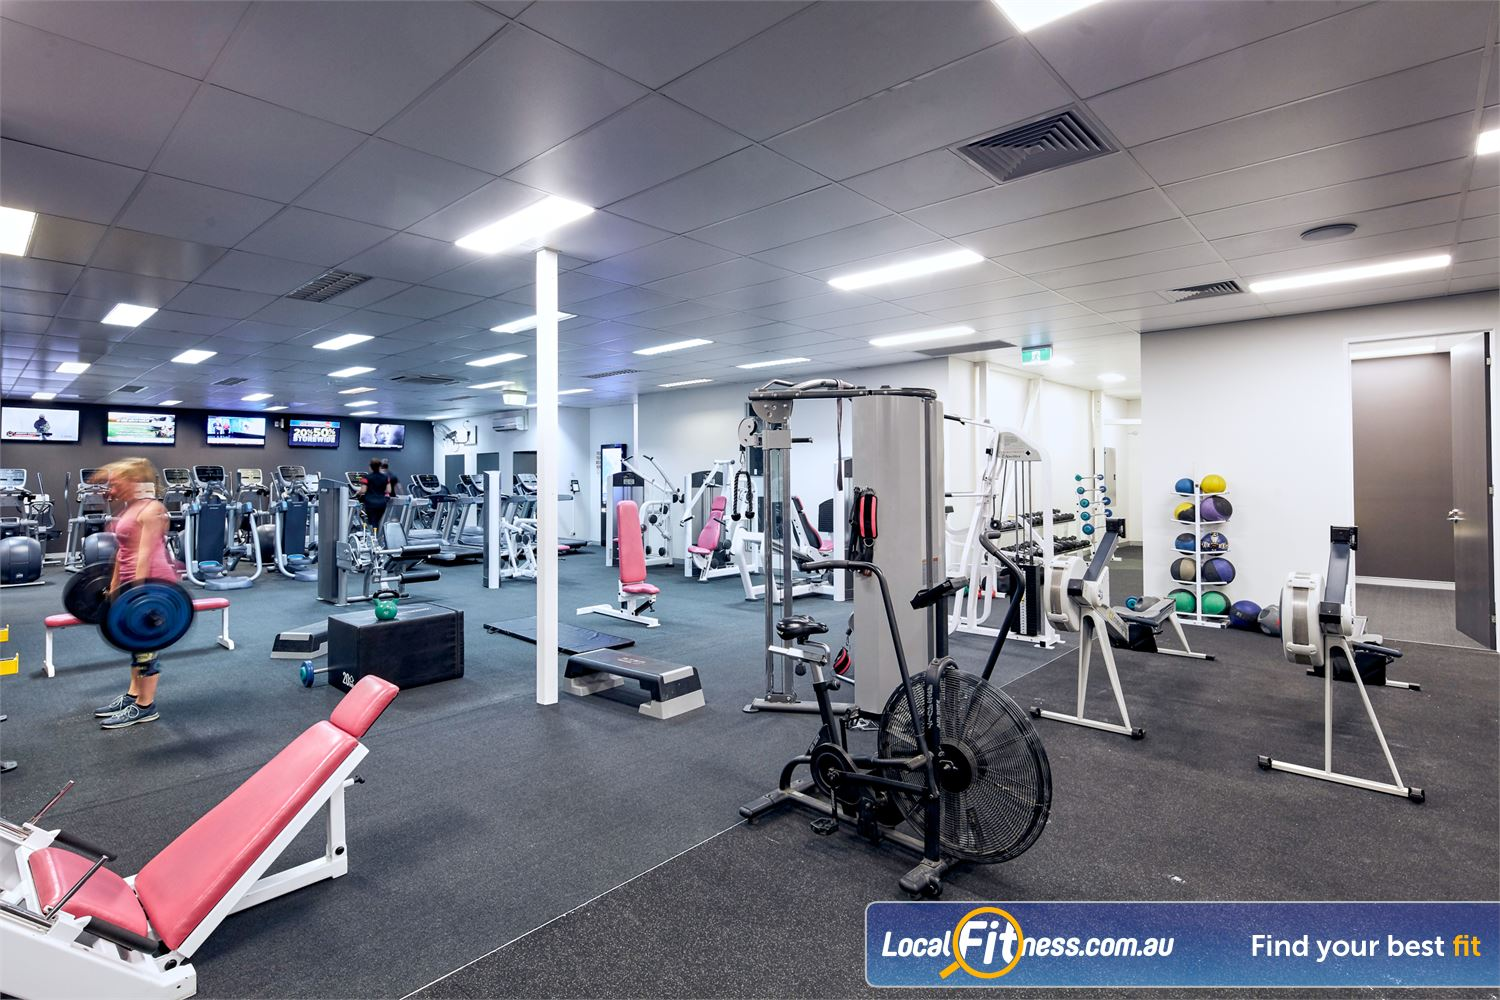 Fernwood Fitness Browns Plains Welcome to Fernwood Browns Plains gym - more than just a gym!